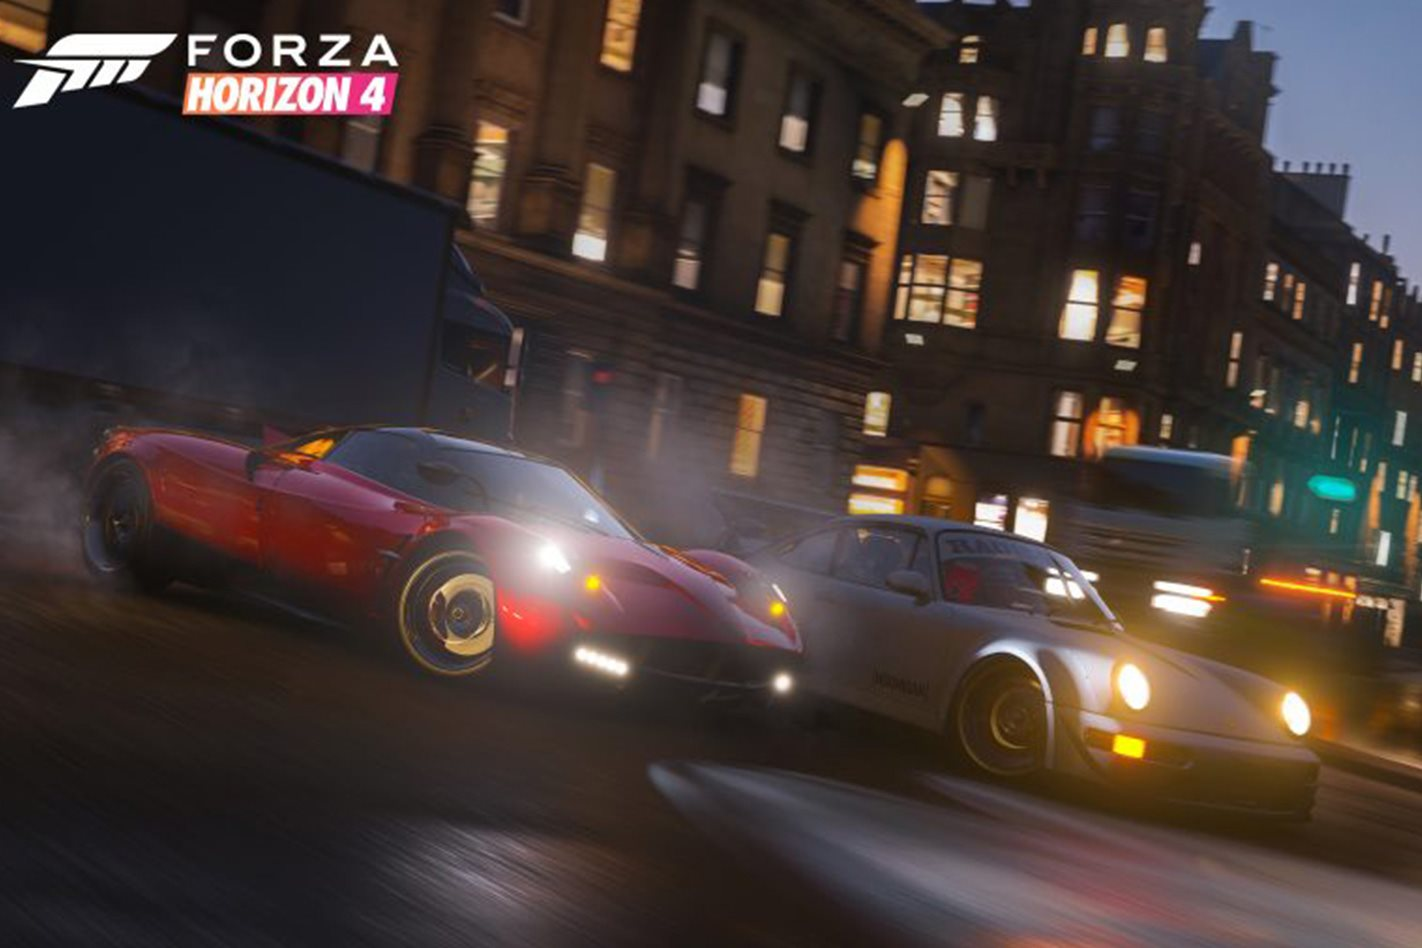 Forza Horizon 4 Car List Leaked Ahead Of Launch